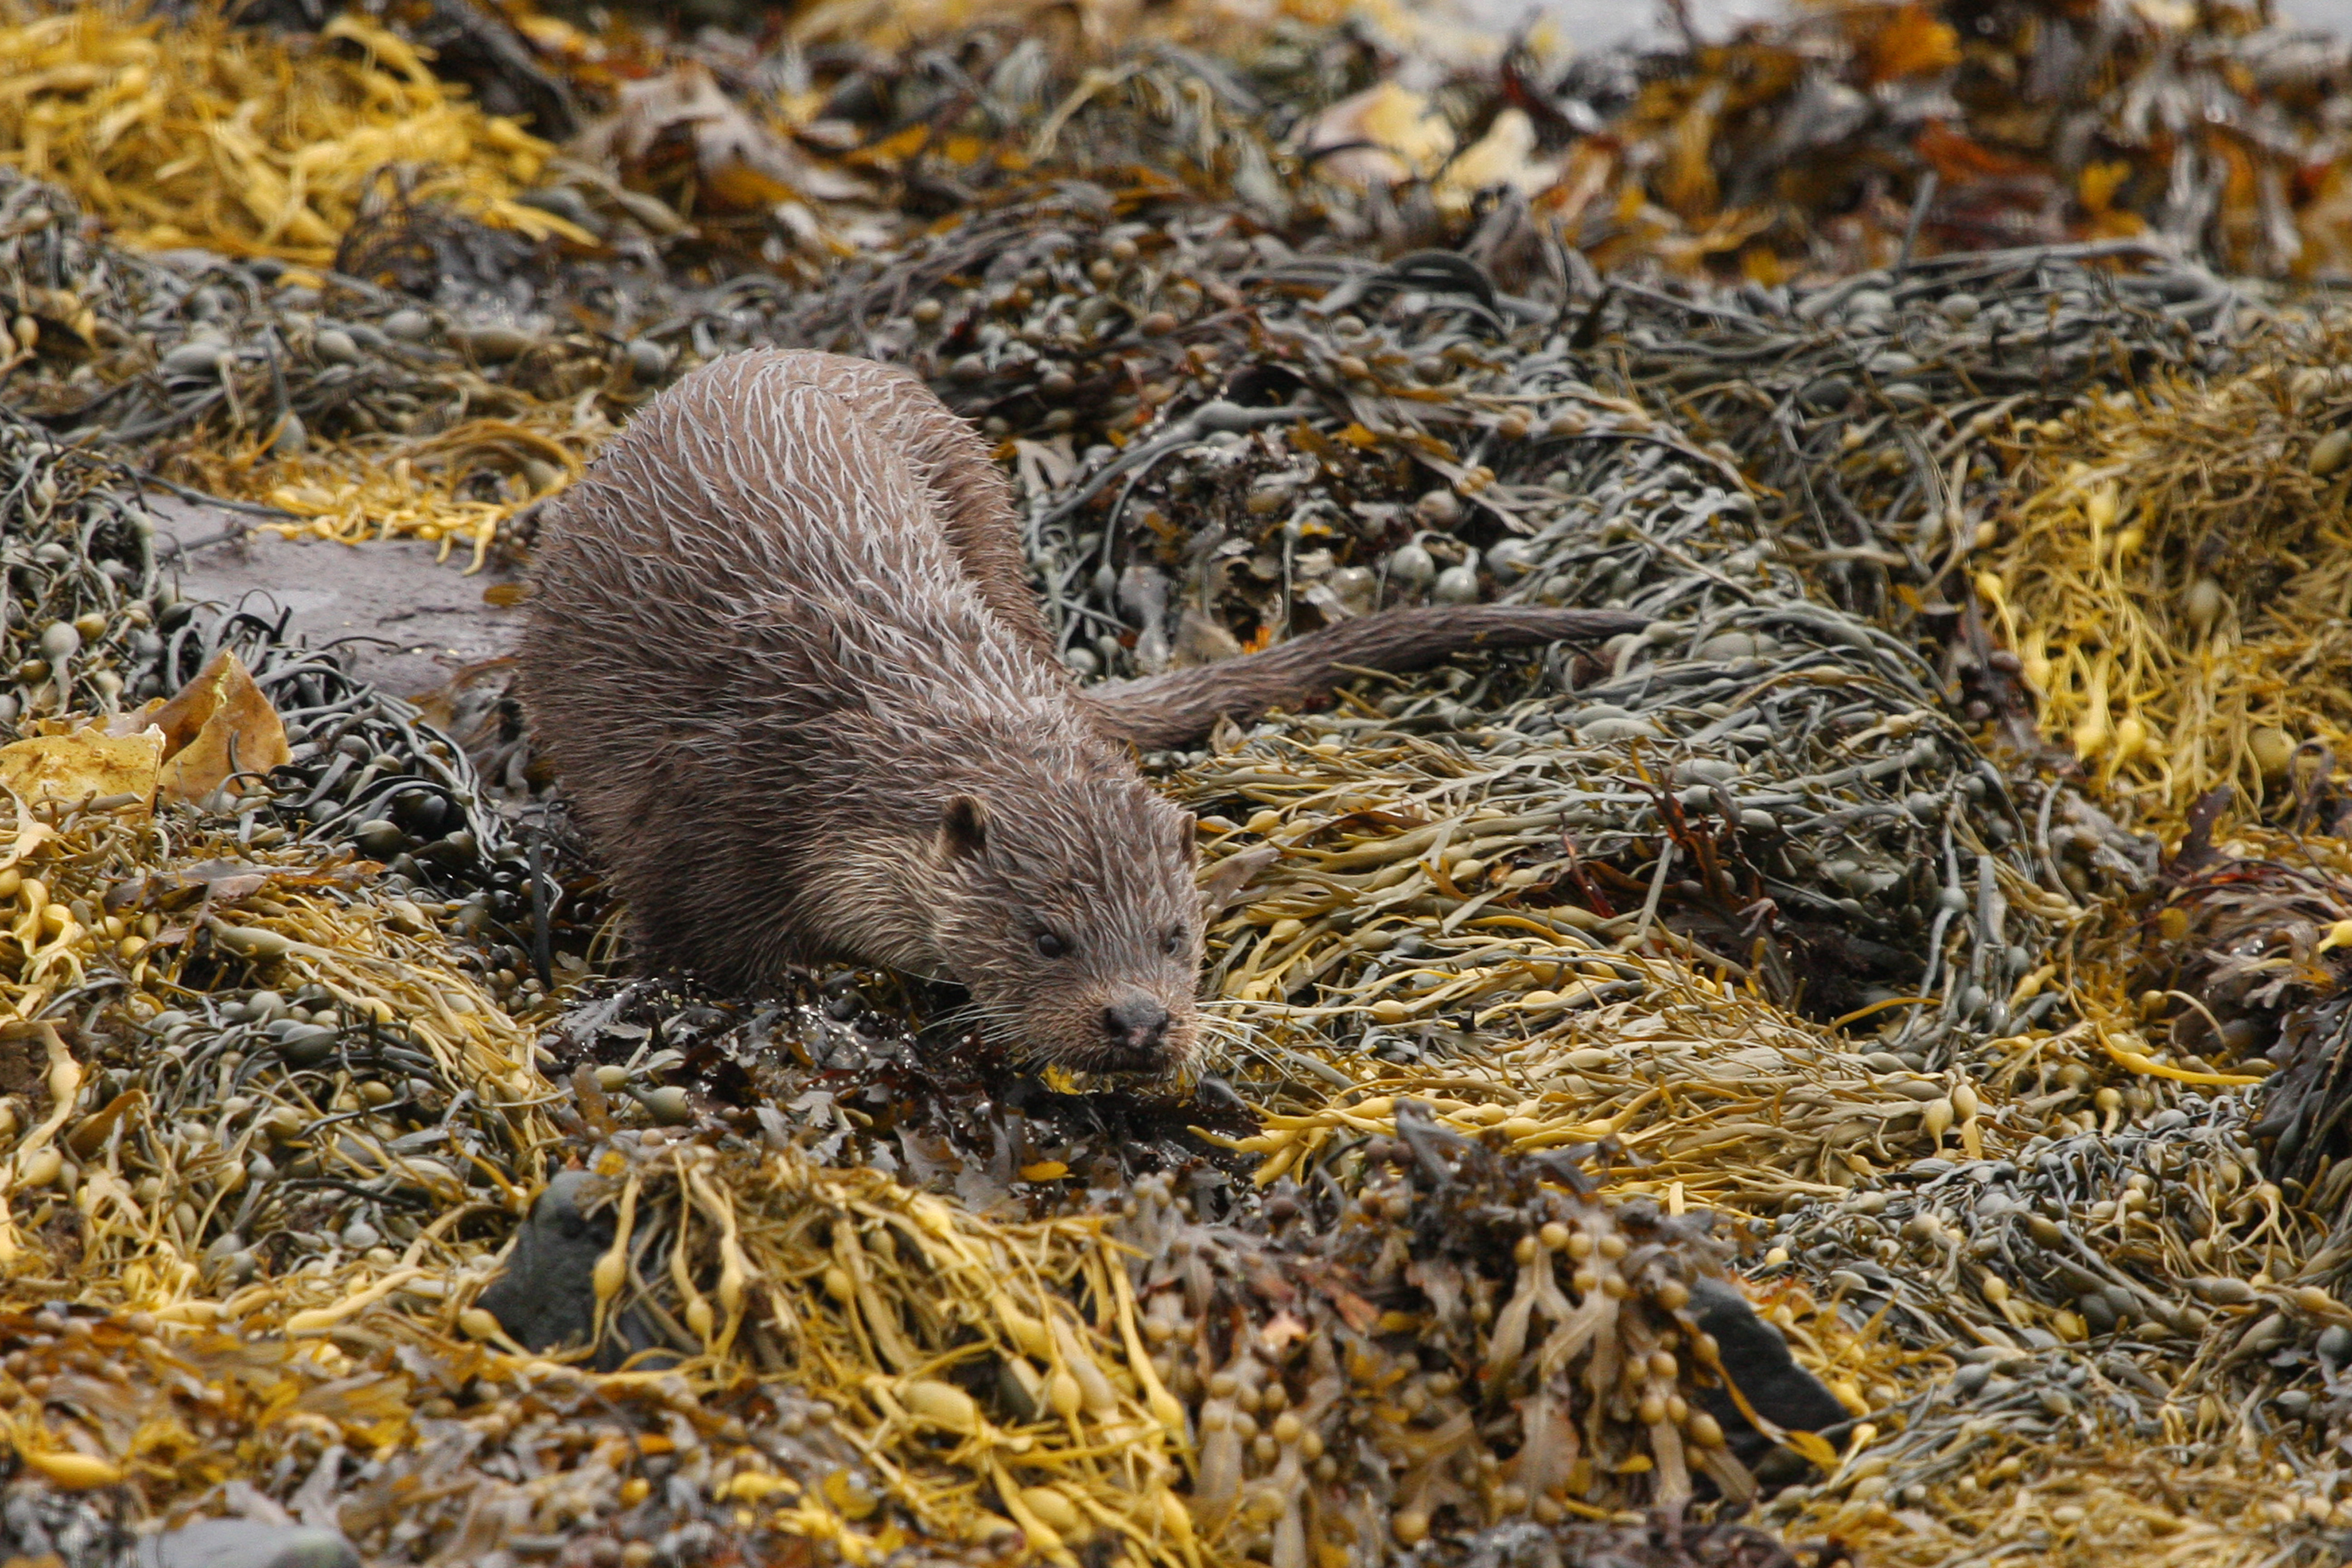 Young otter creeping through seaweed